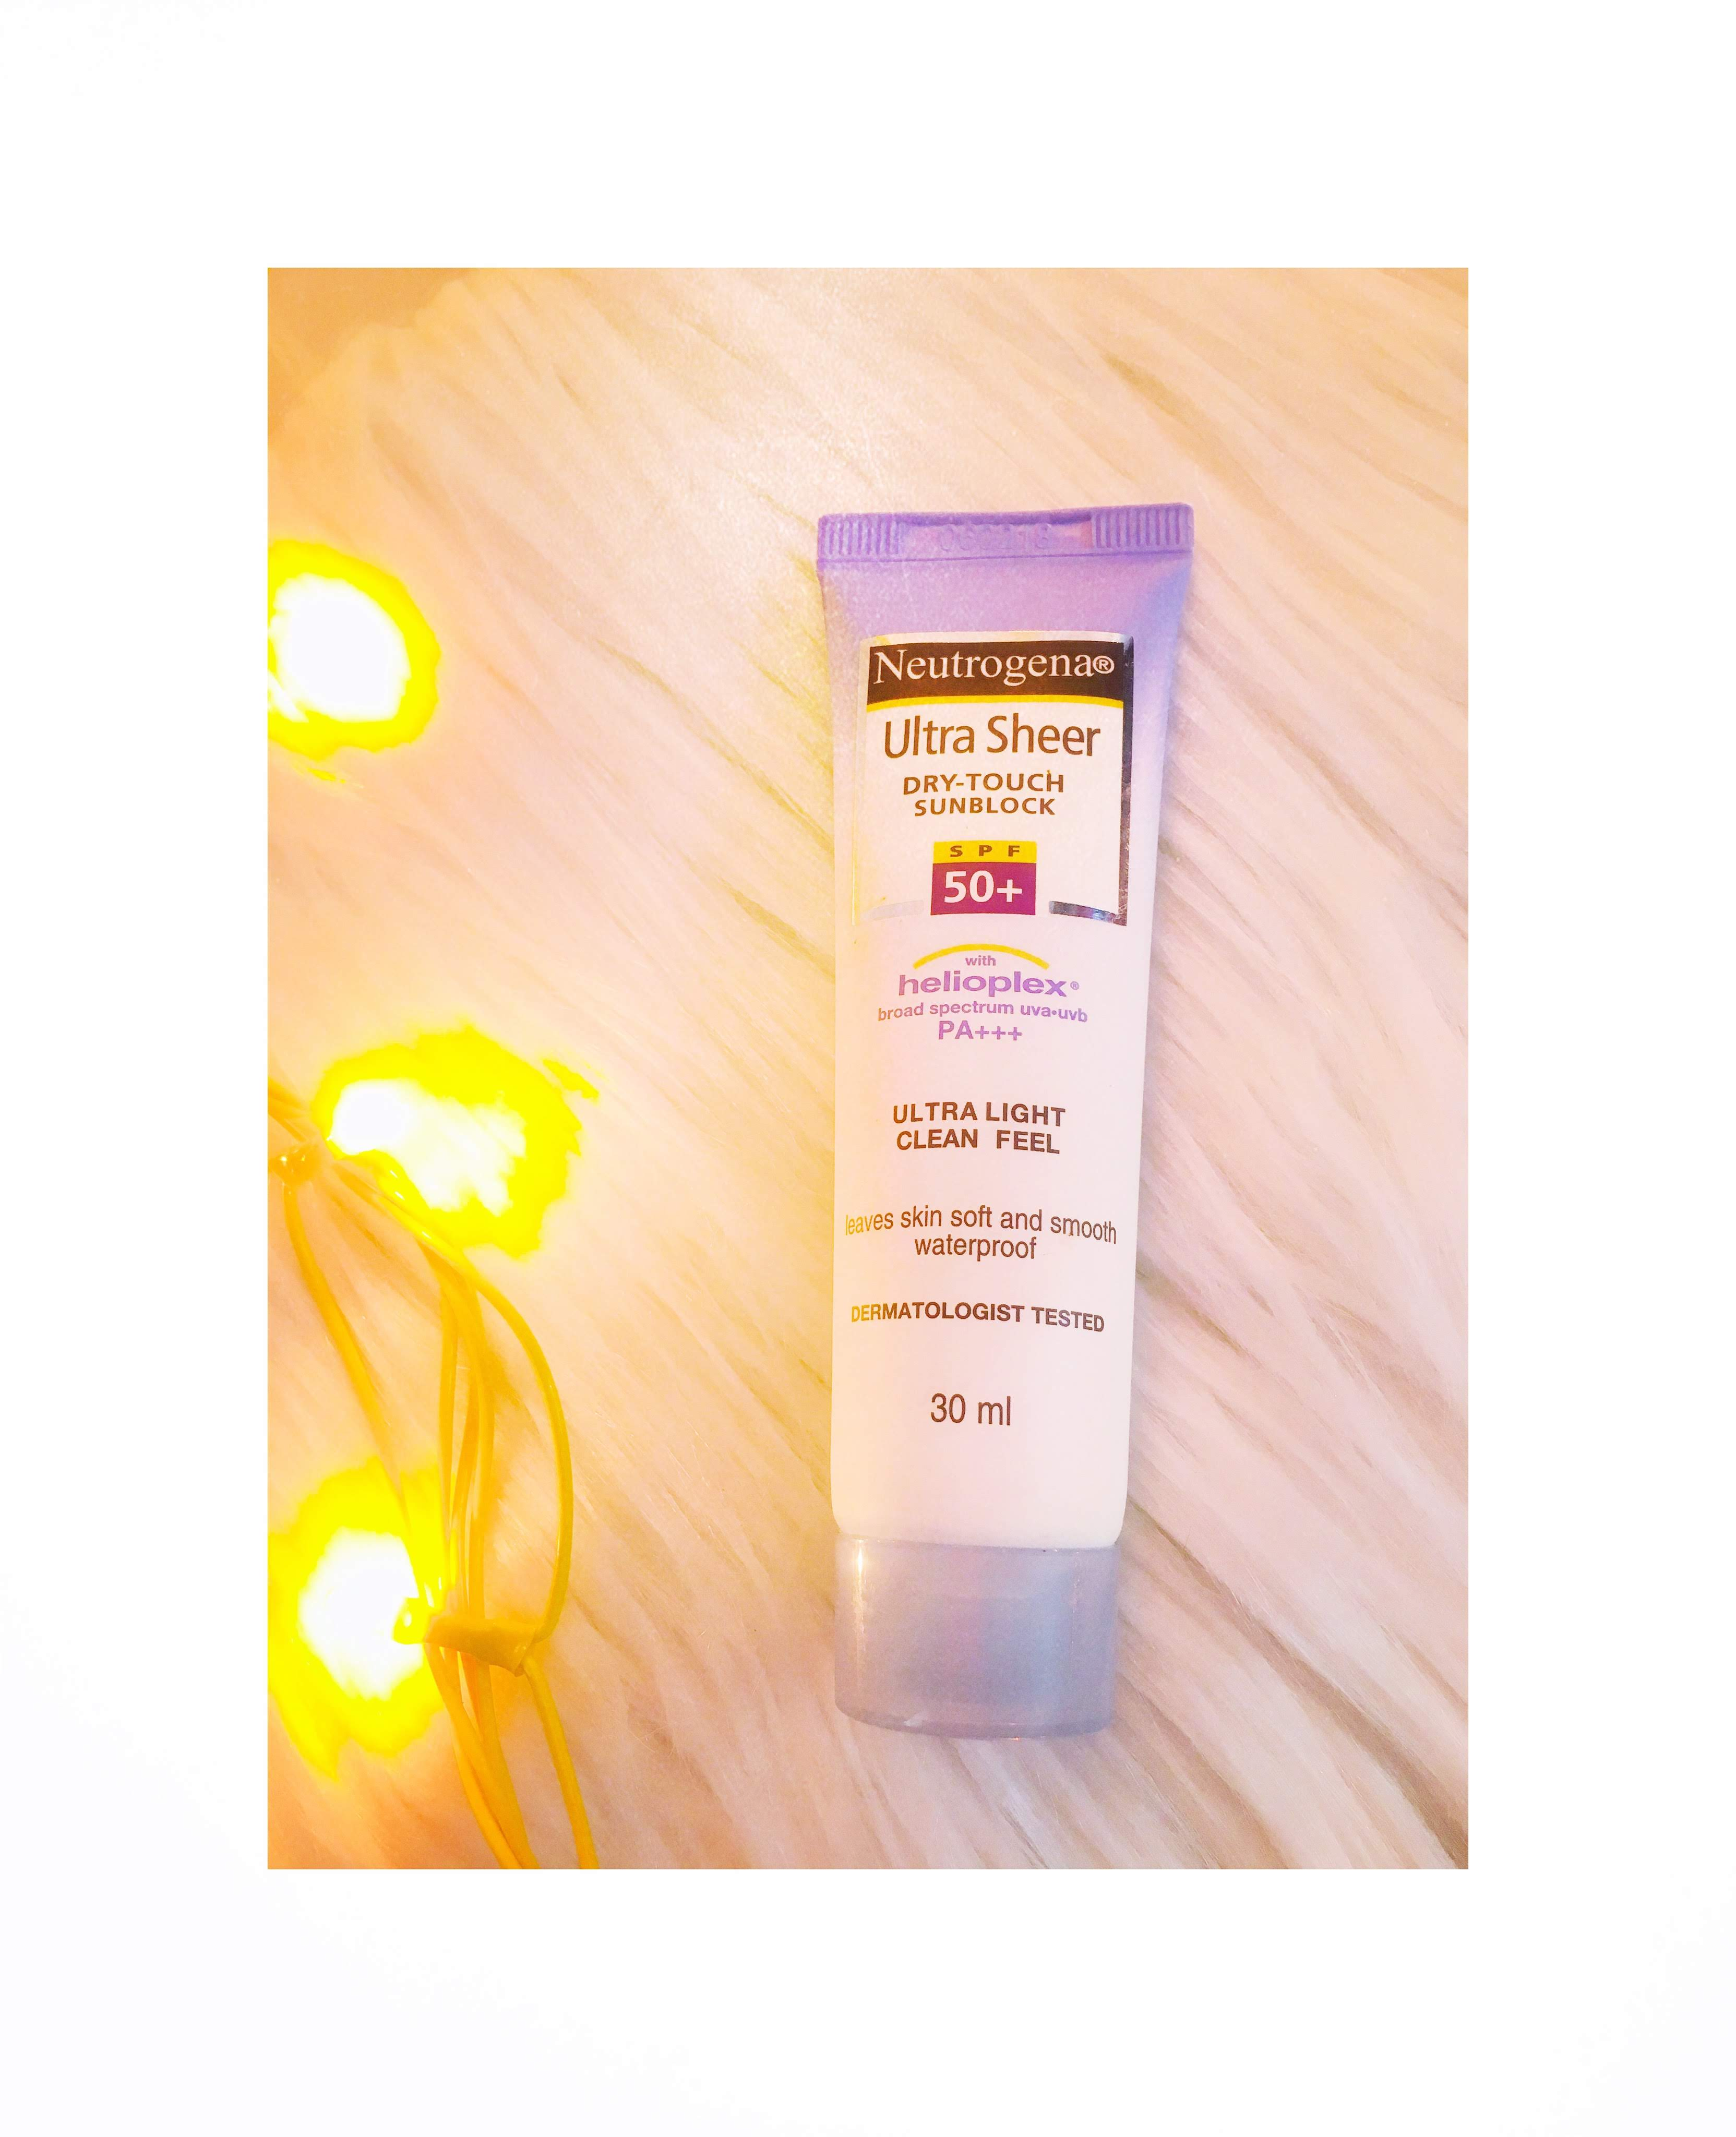 Neutrogena Ultra Sheer Dry Touch Sunscreen Broad Spectrum SPF 55-Neutrogena Sunscreen review-By sonam011